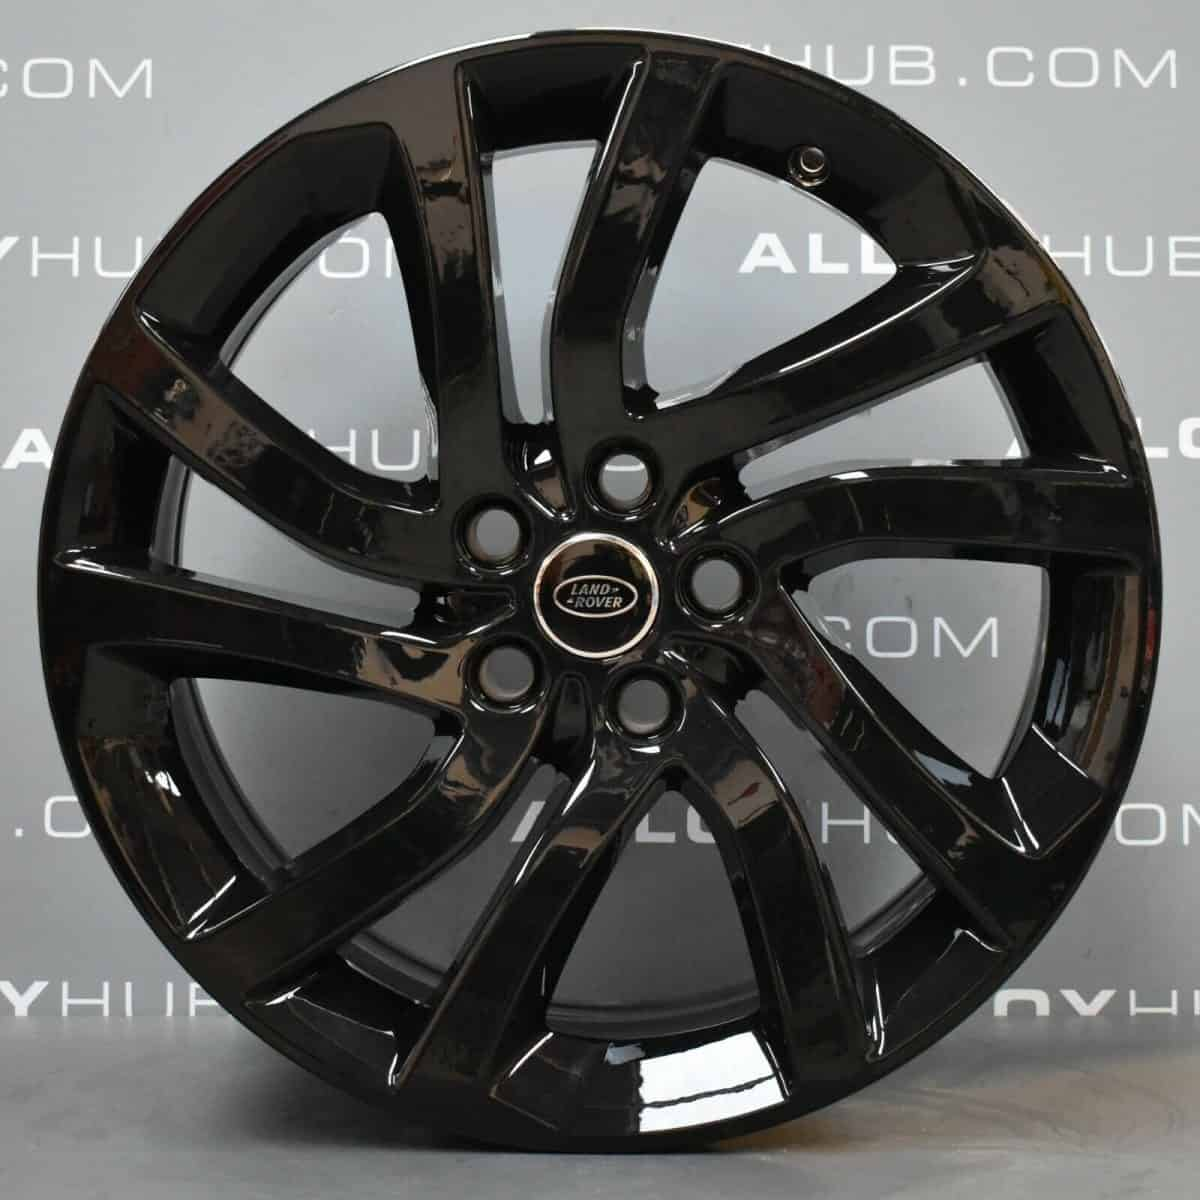 """Genuine Land Rover Discovery 5 Style 5011 5 Split-Spoke 22"""" inch Alloy Wheels with Gloss Black Finish LR082900"""